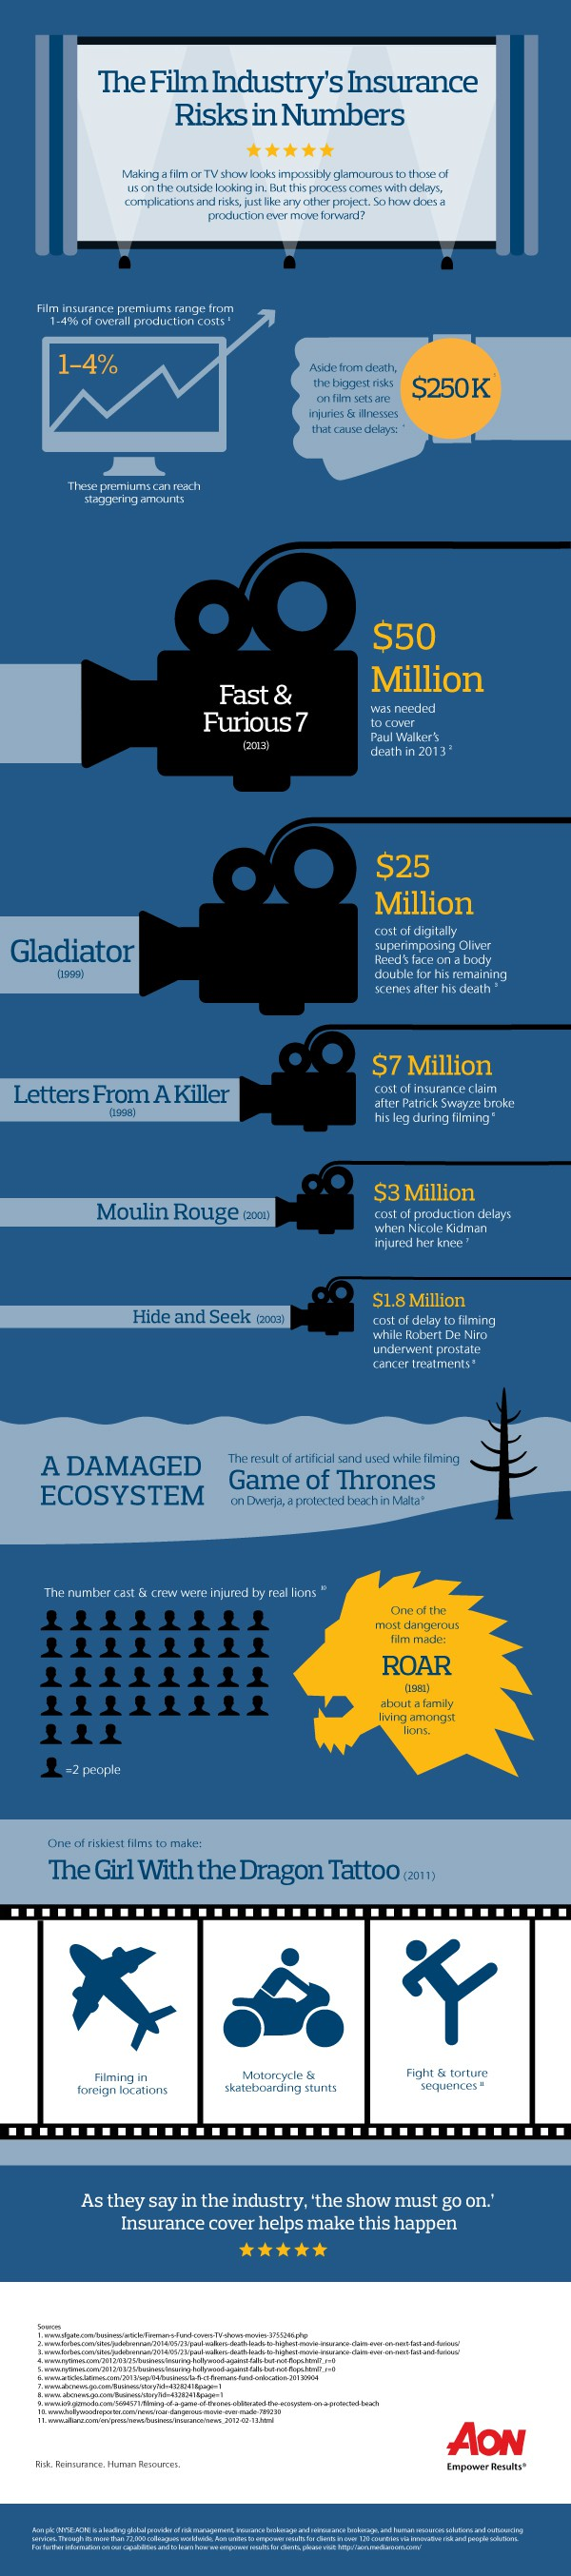 Film Industry's Insurance Risks Infographic